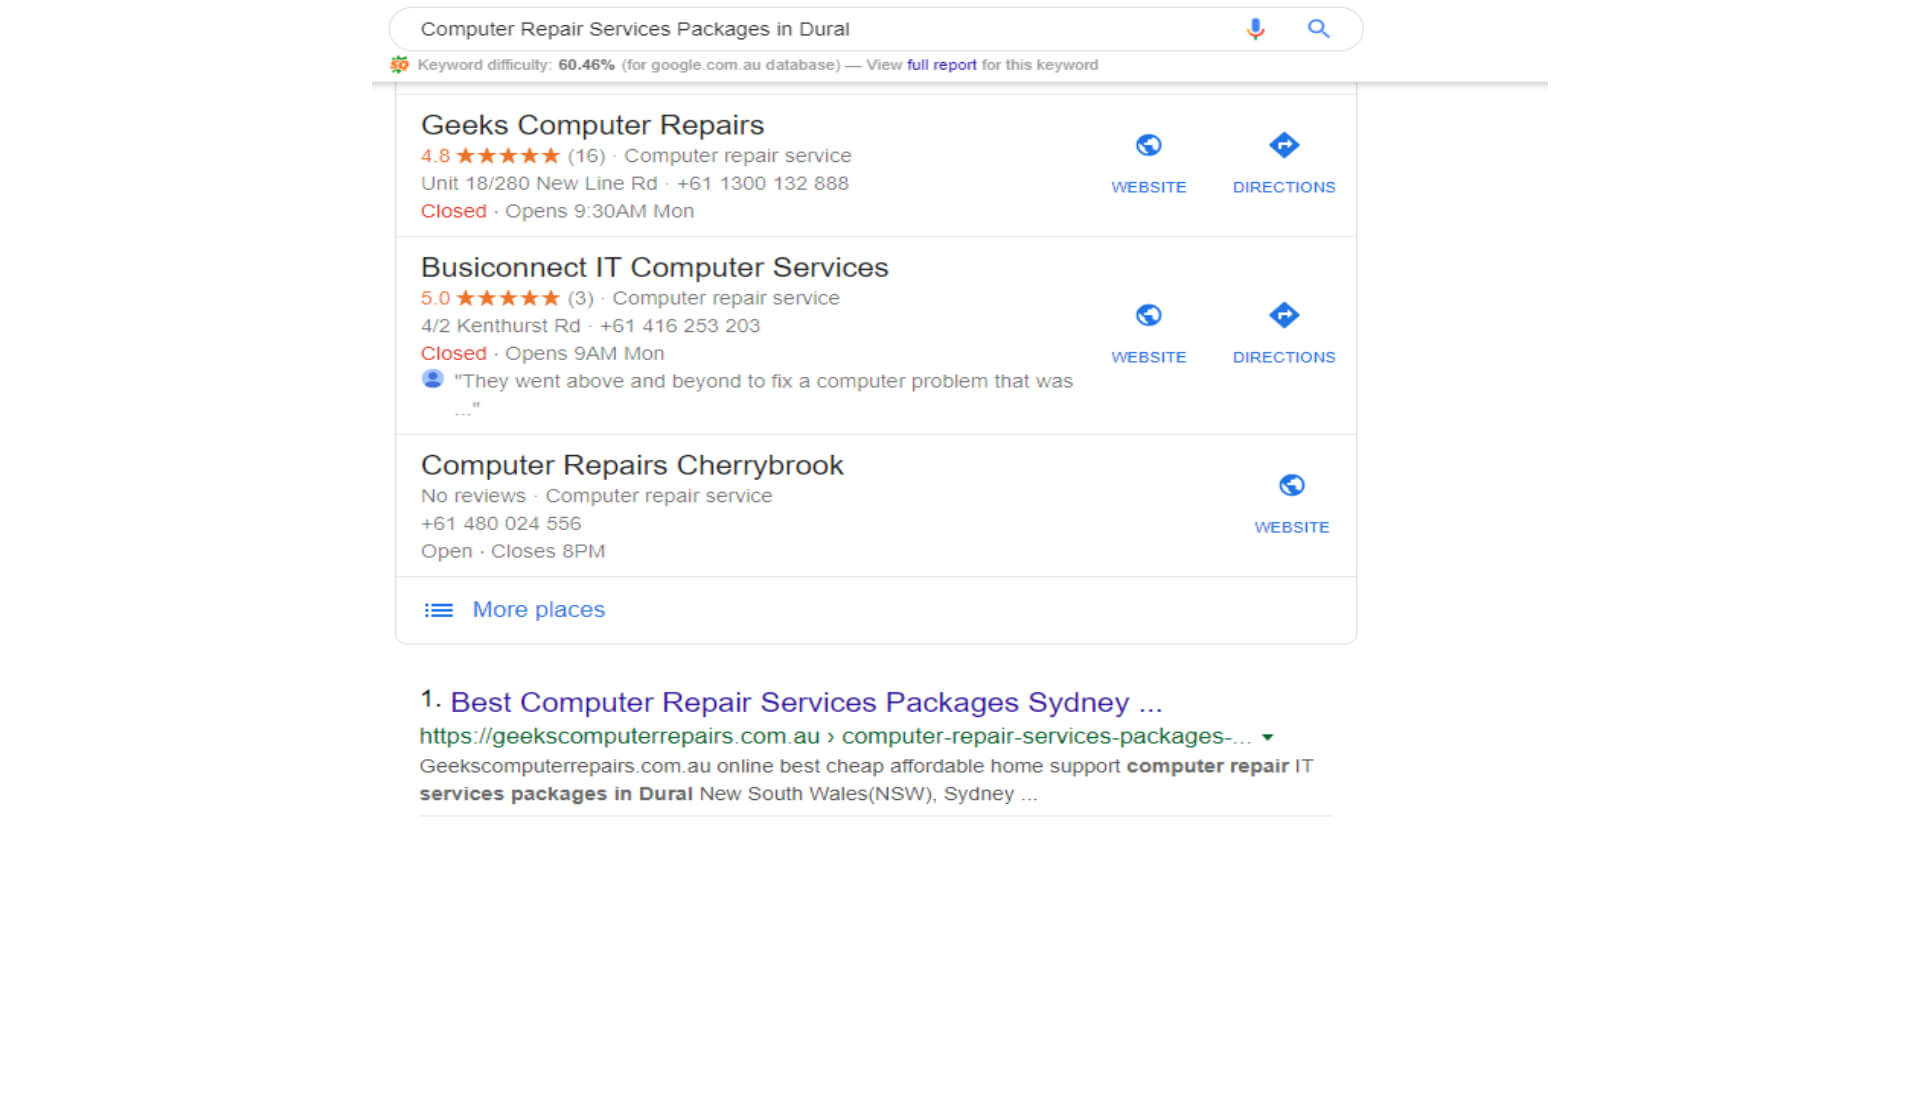 Computer Repair Services Packages in Dural